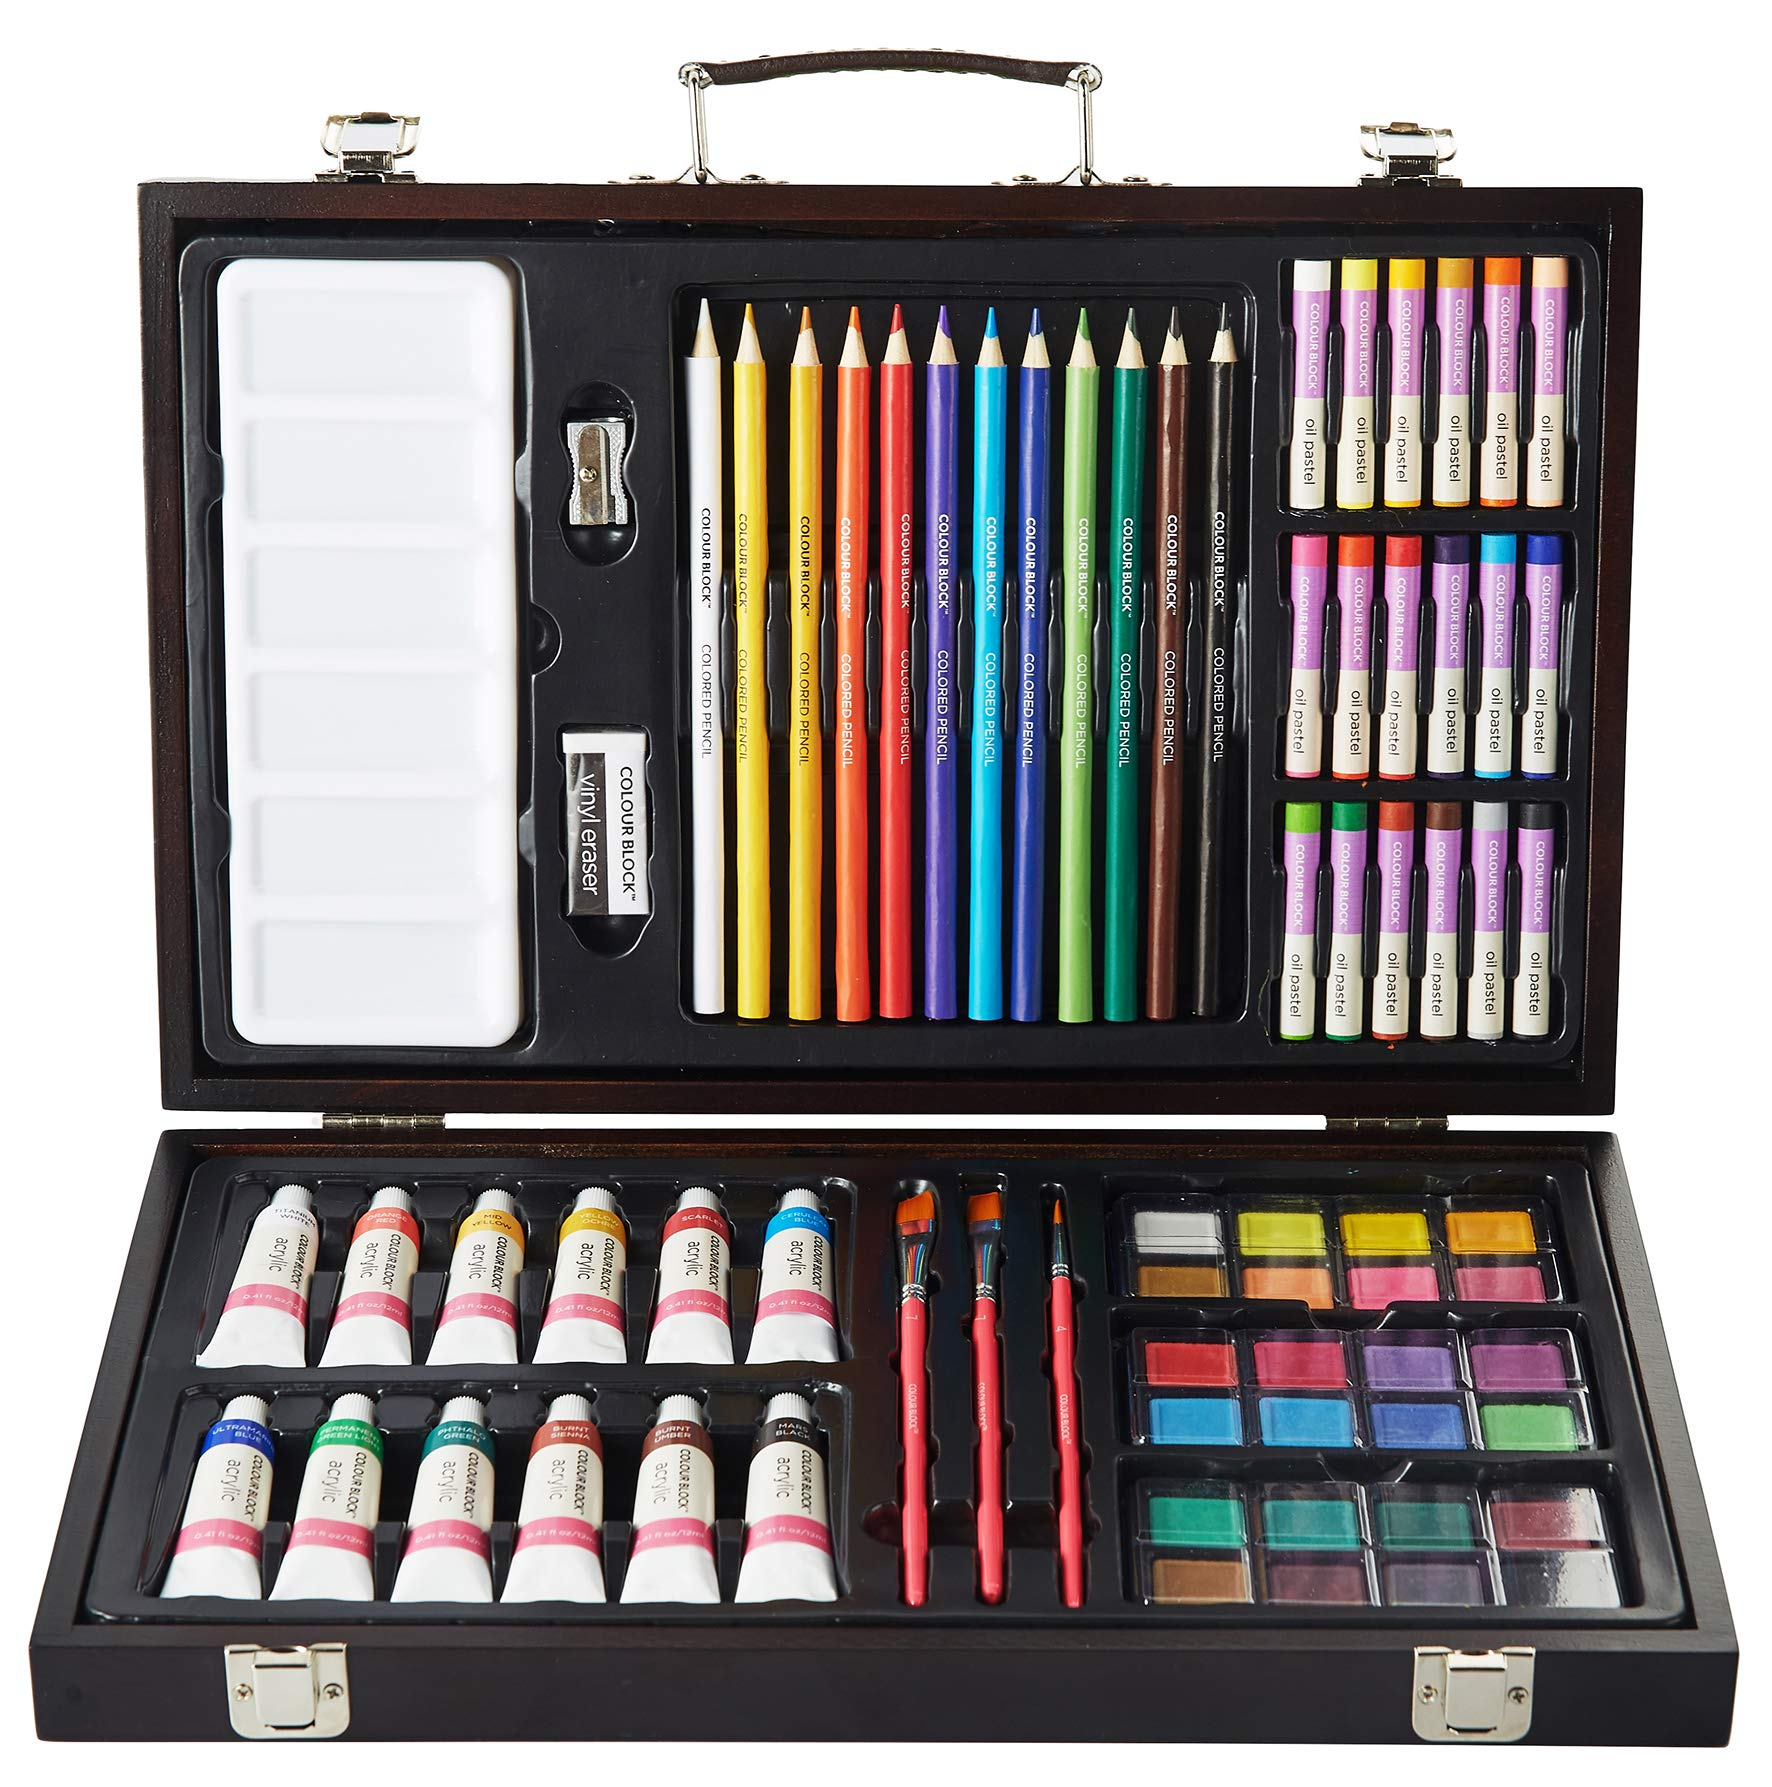 COLOUR BLOCK Classic 73 Piece Wooden Box Art Supplies Kit, with Colored Pencils, Acrylic Paints, Watercolor Cakes, Oil Pastels, Brushes and Palette for Teens and Student Artists